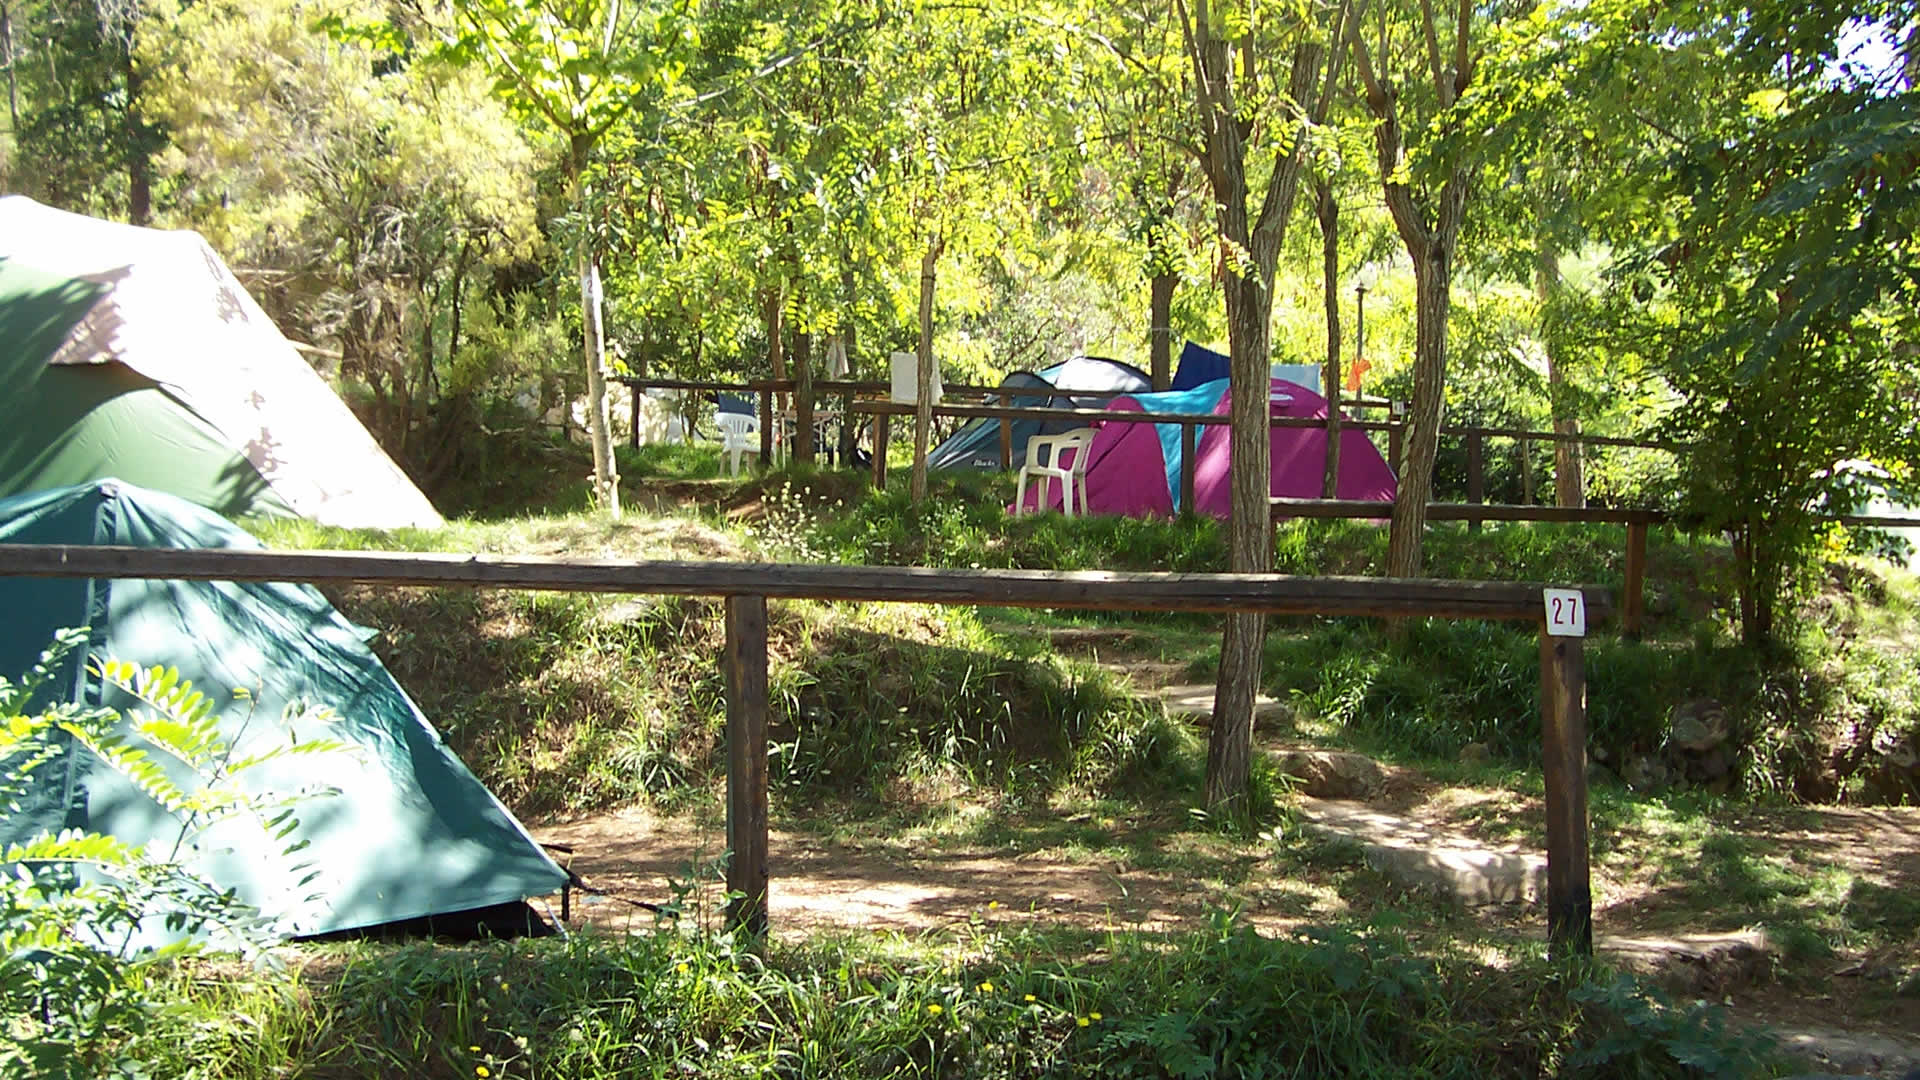 Small tent 2 places, pitch + 2 people + car: 18.00 euros per night. Hot showers included, wi_FI included. FREE CANCELLATION !